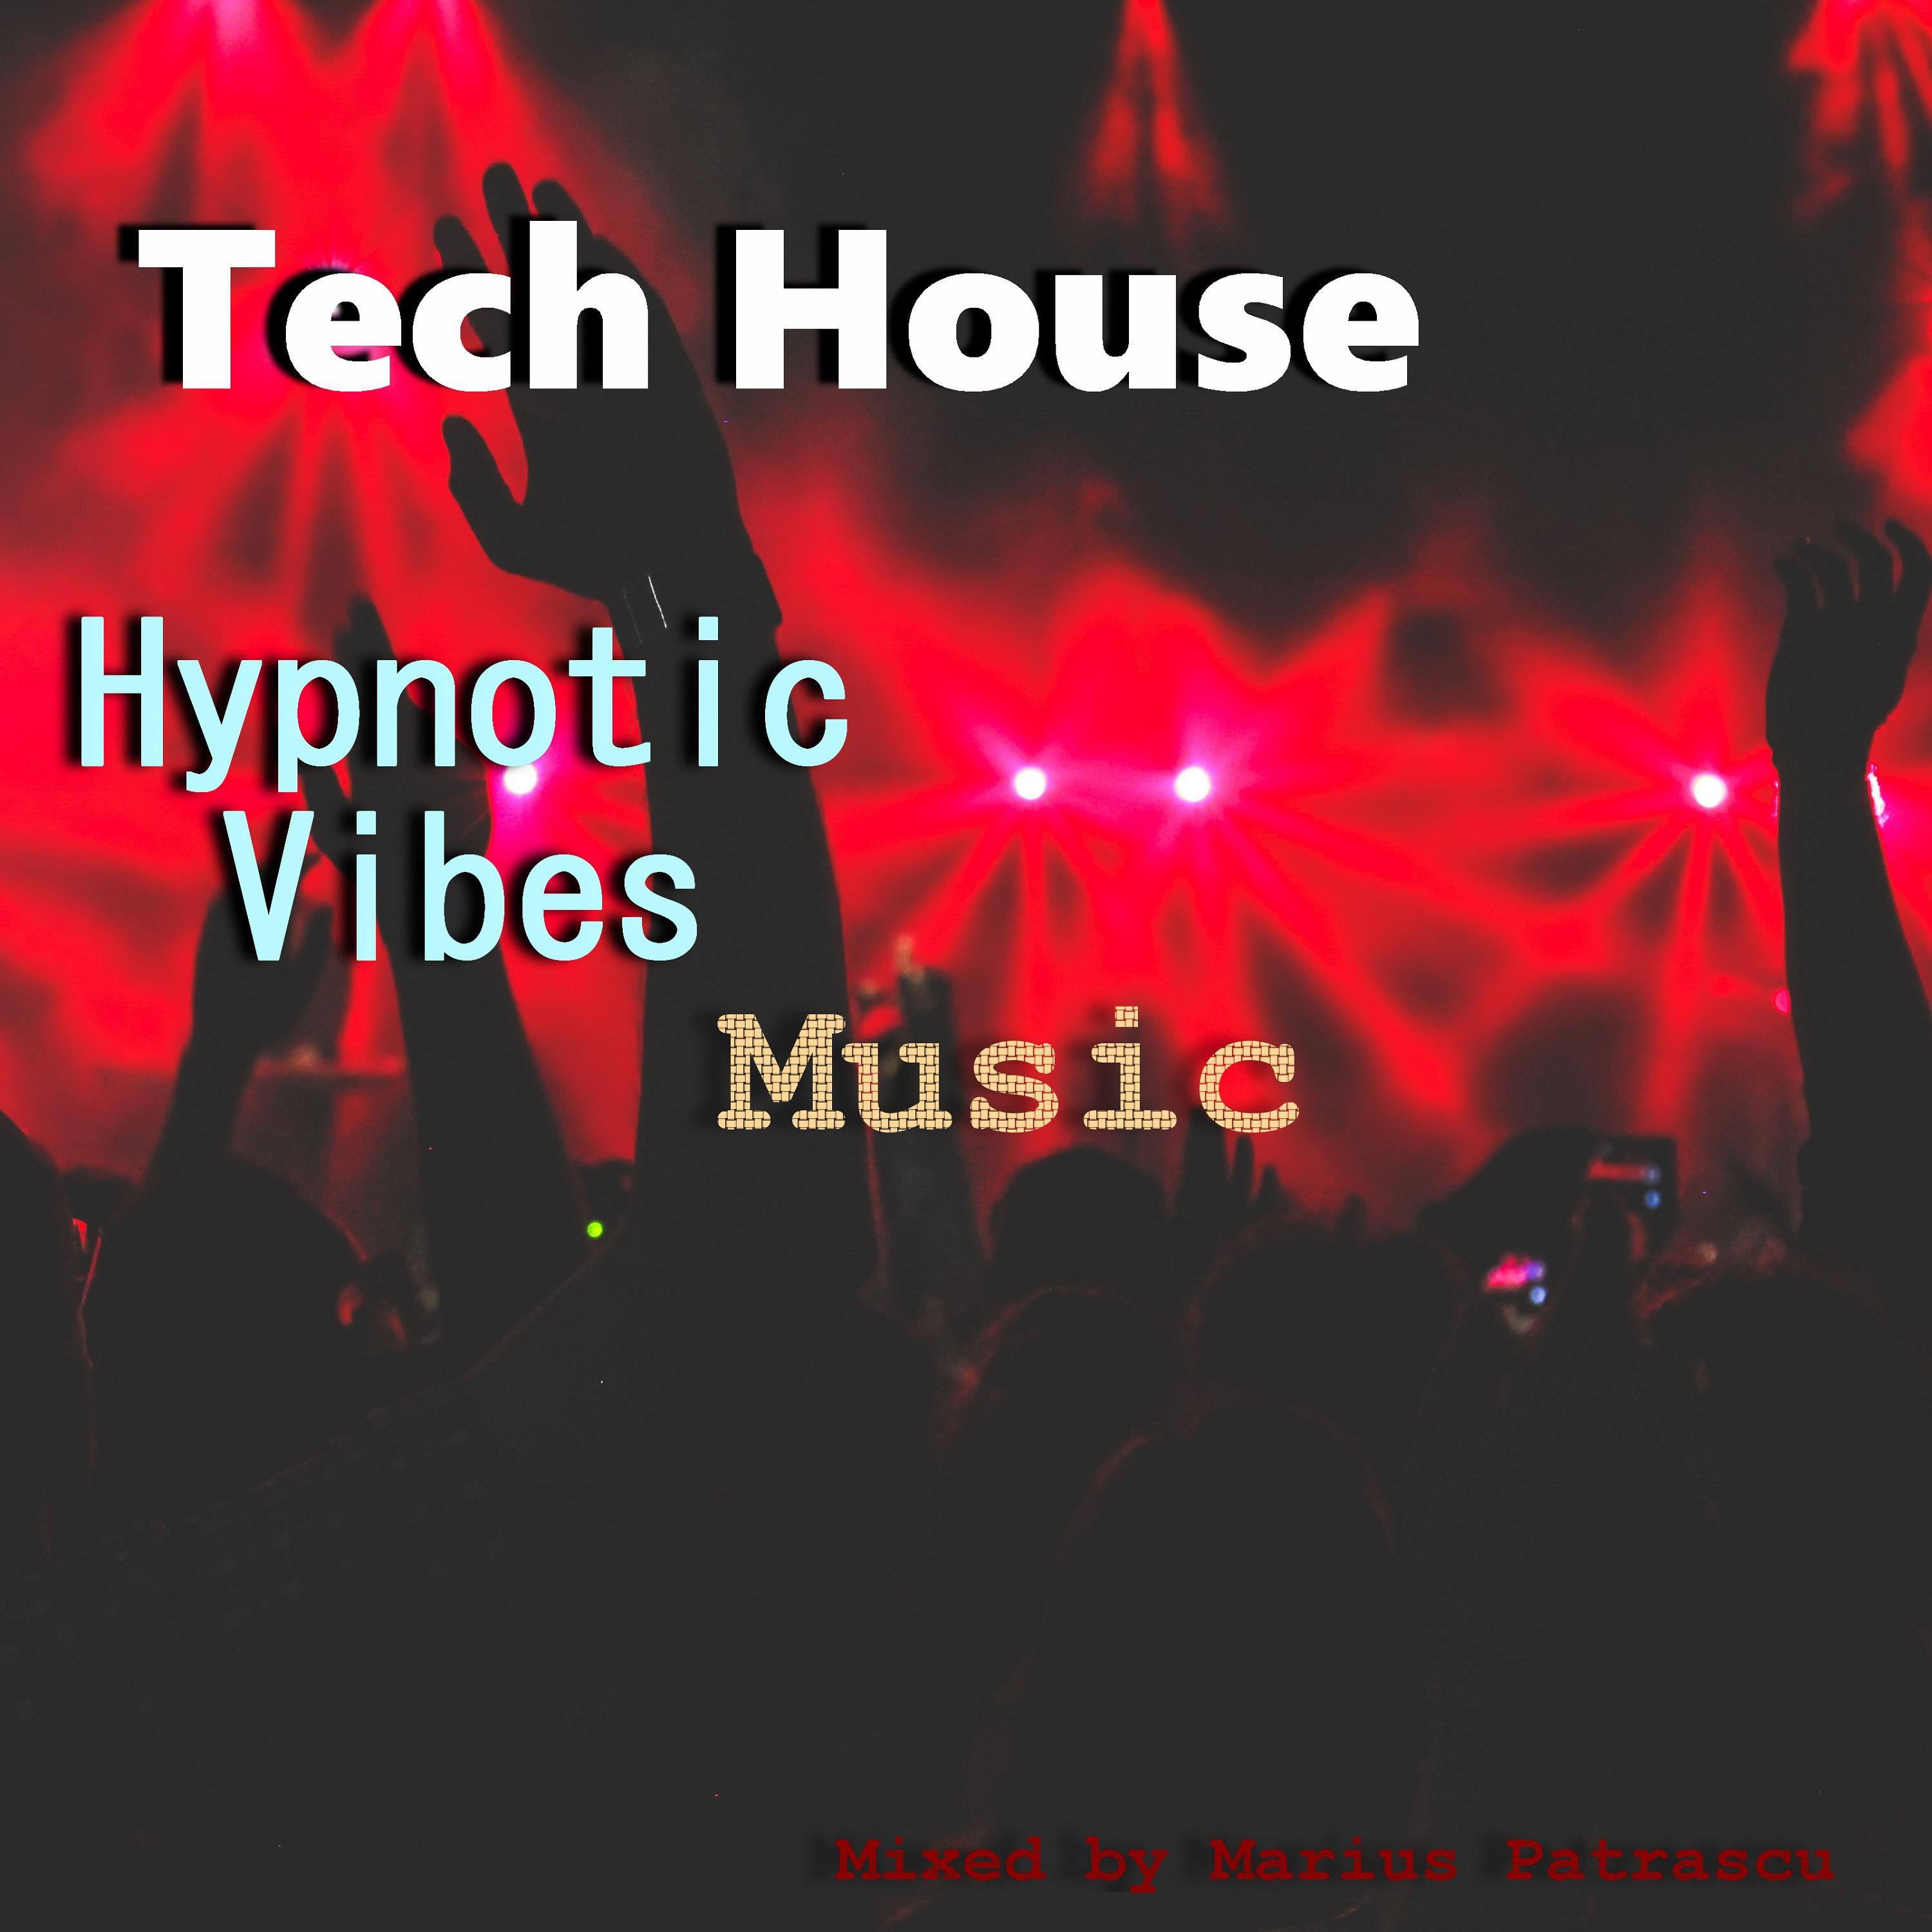 Tech House Hypnotic Vibes Music (Compiled and Mixed by Marius Patrascu)